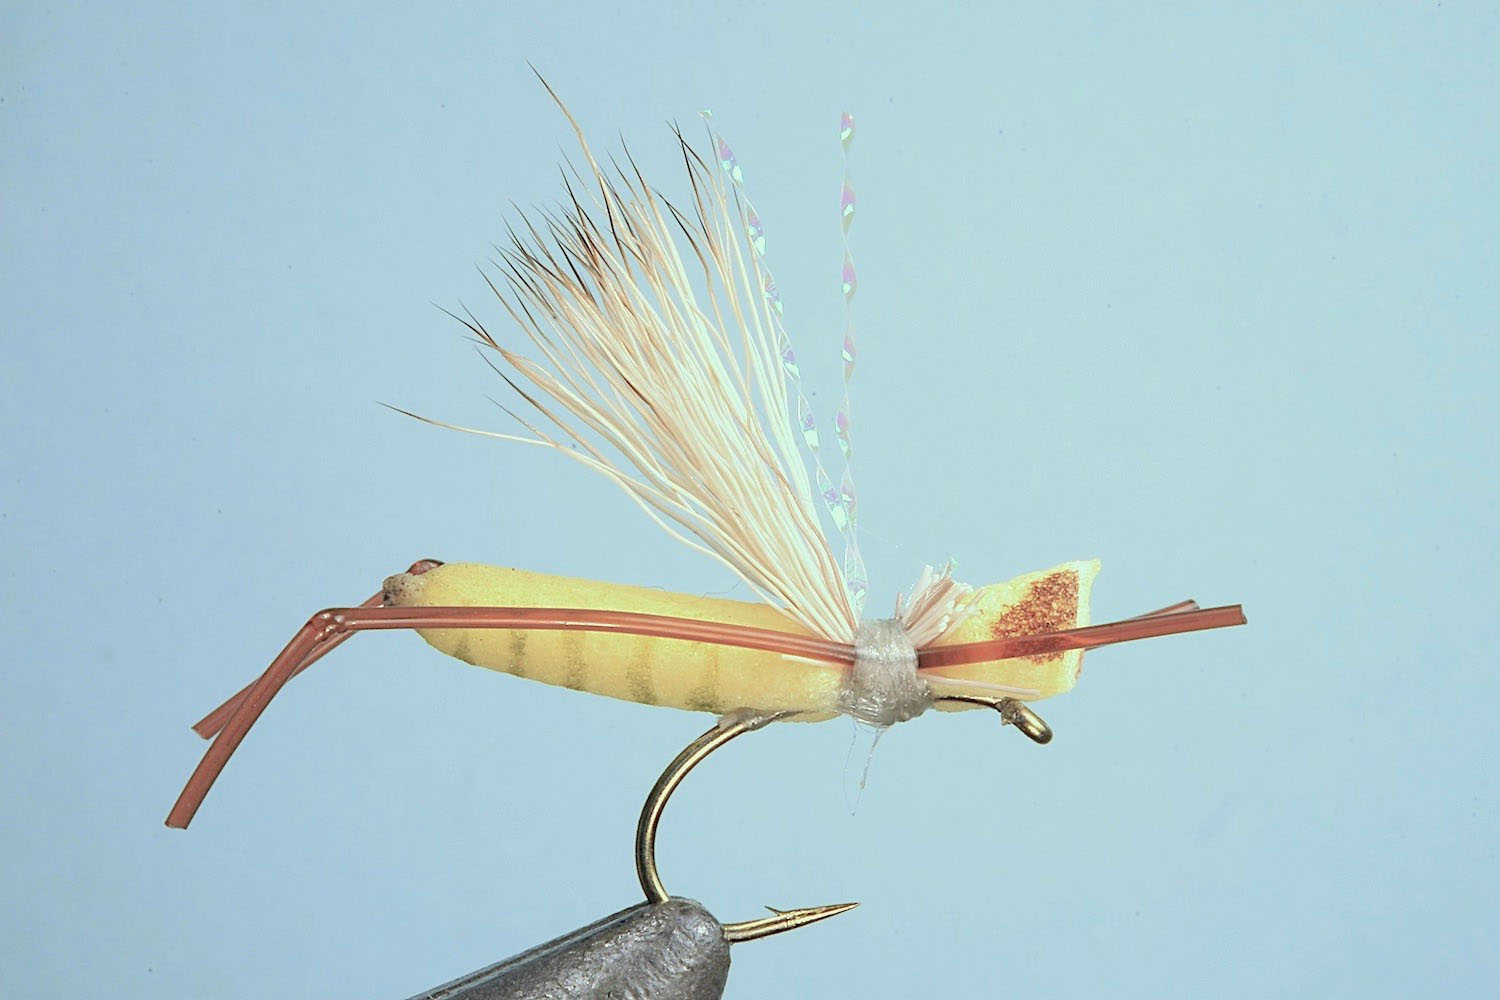 Showing step 7 of tying sequence for hot foam hopper fly pattern